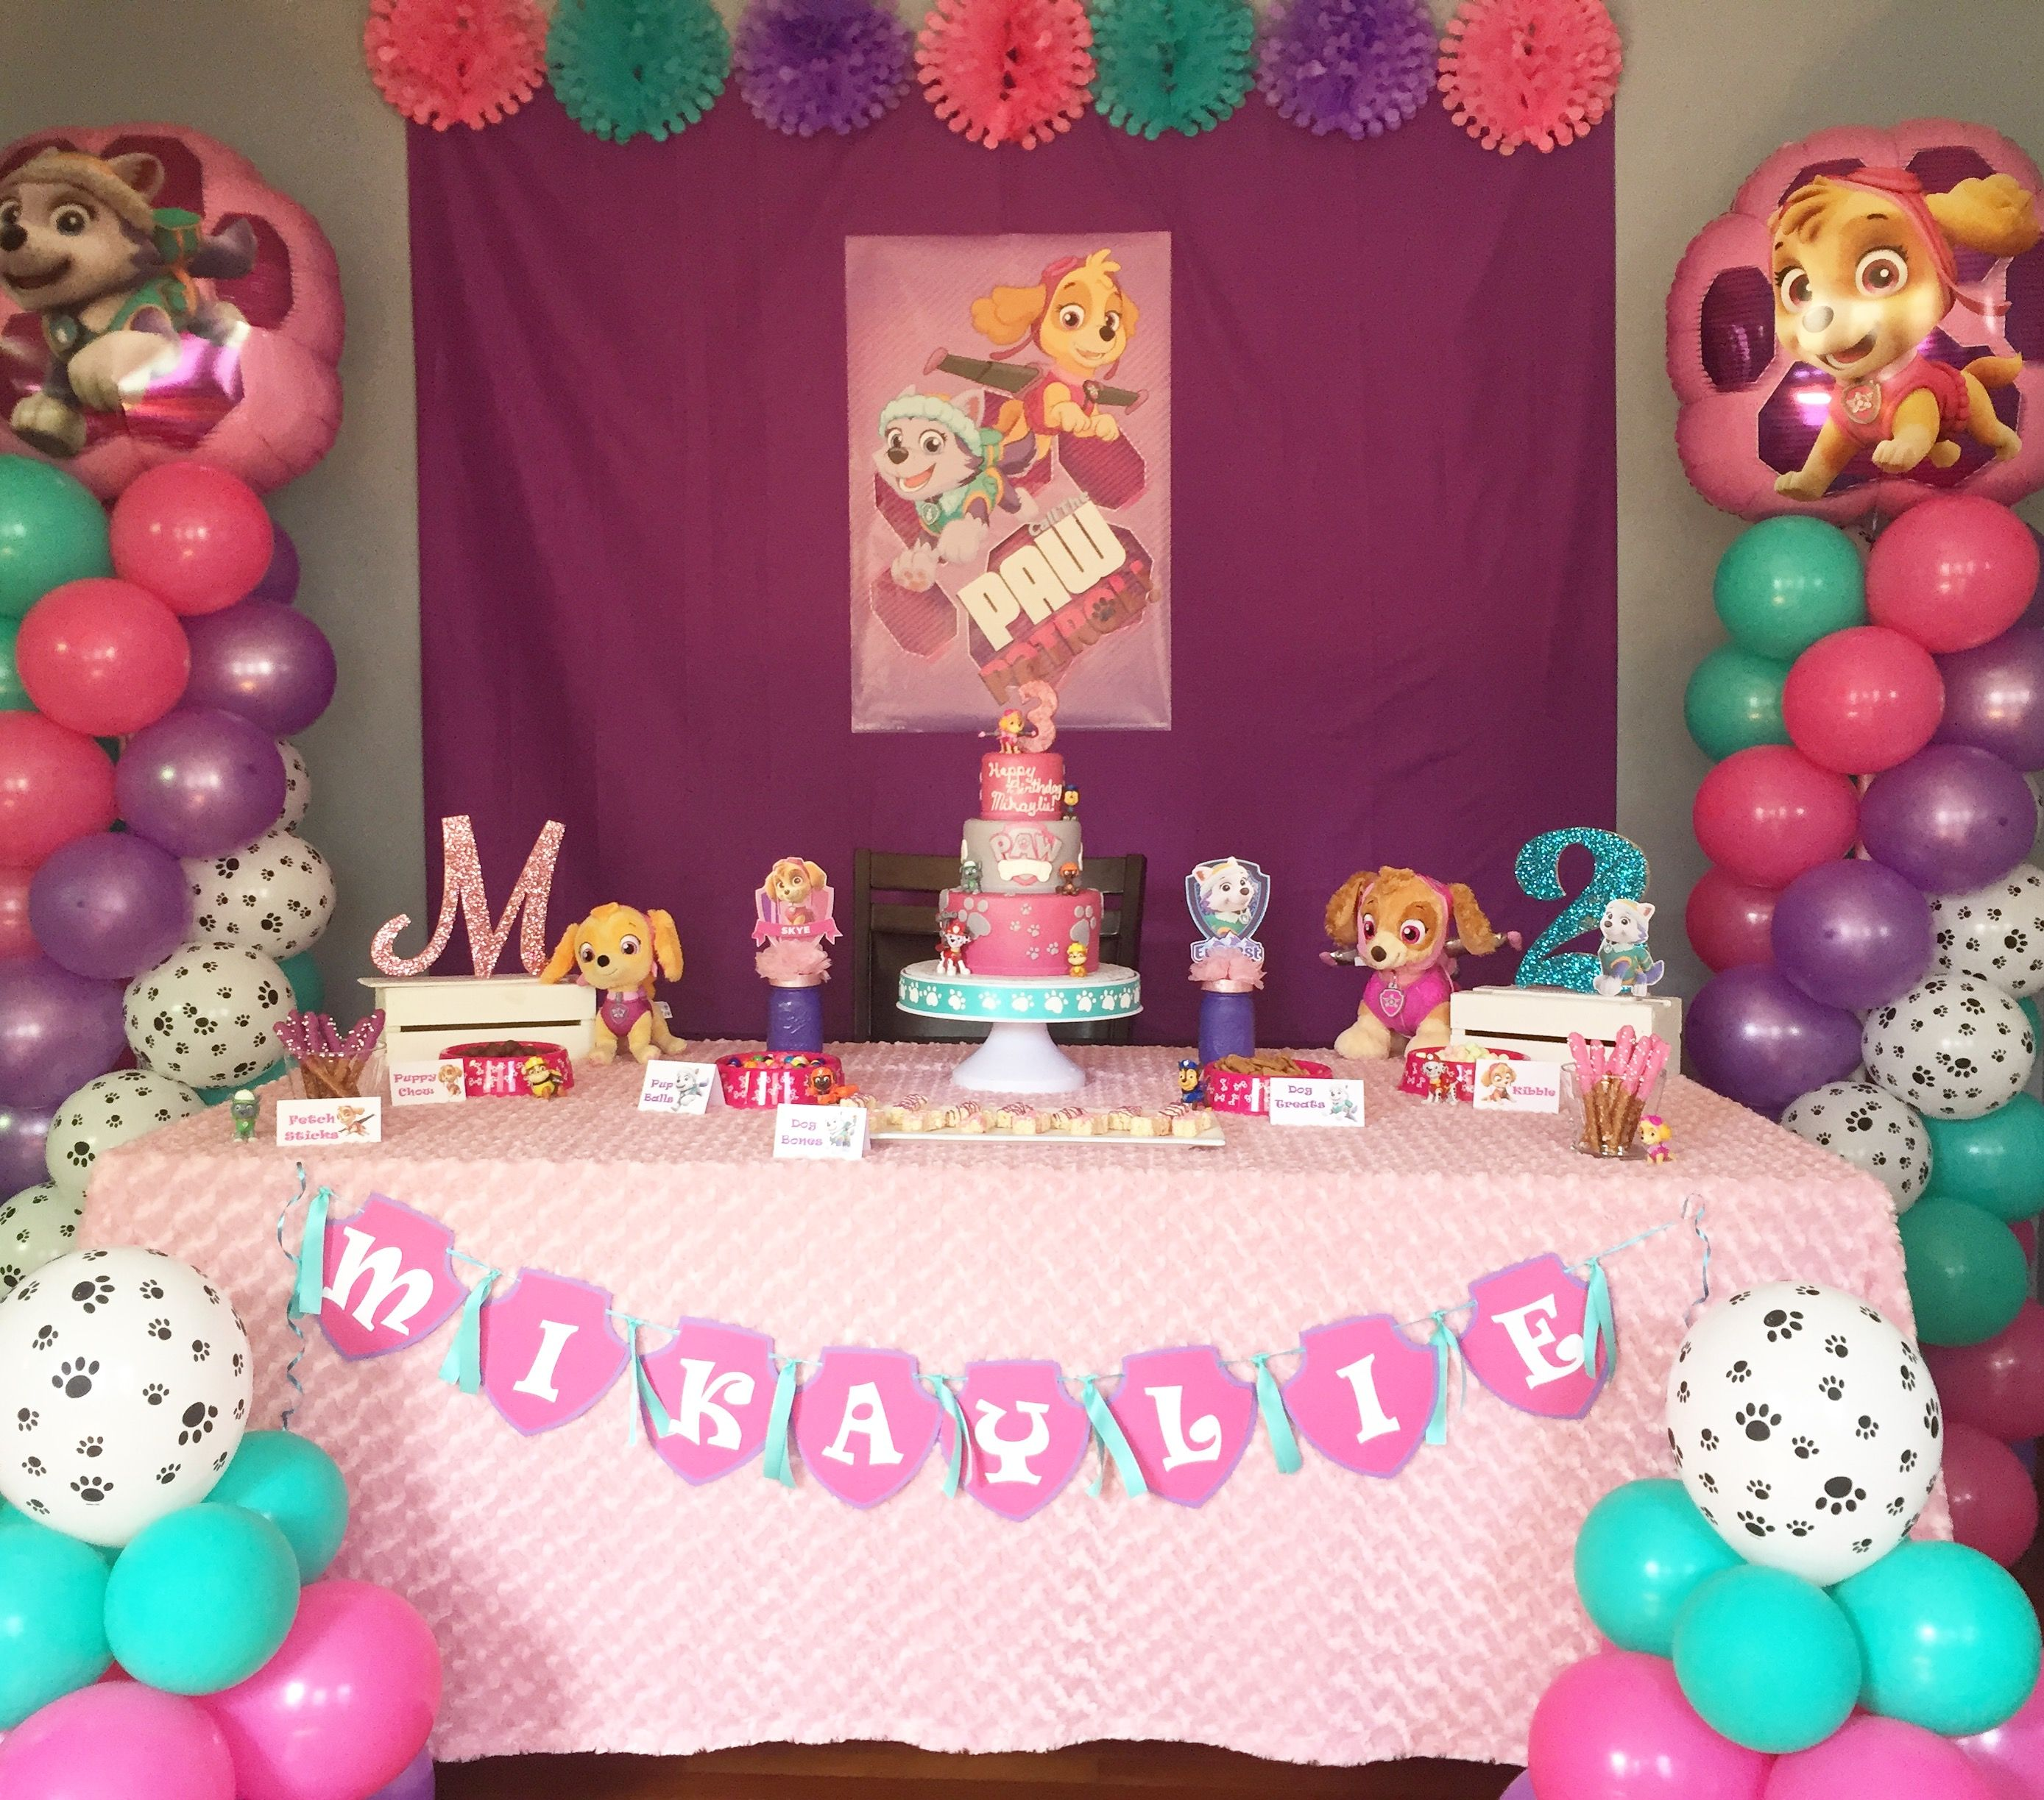 Paw patrol skye party girl party kr kreations - Skye patrulla canina cumpleanos ...